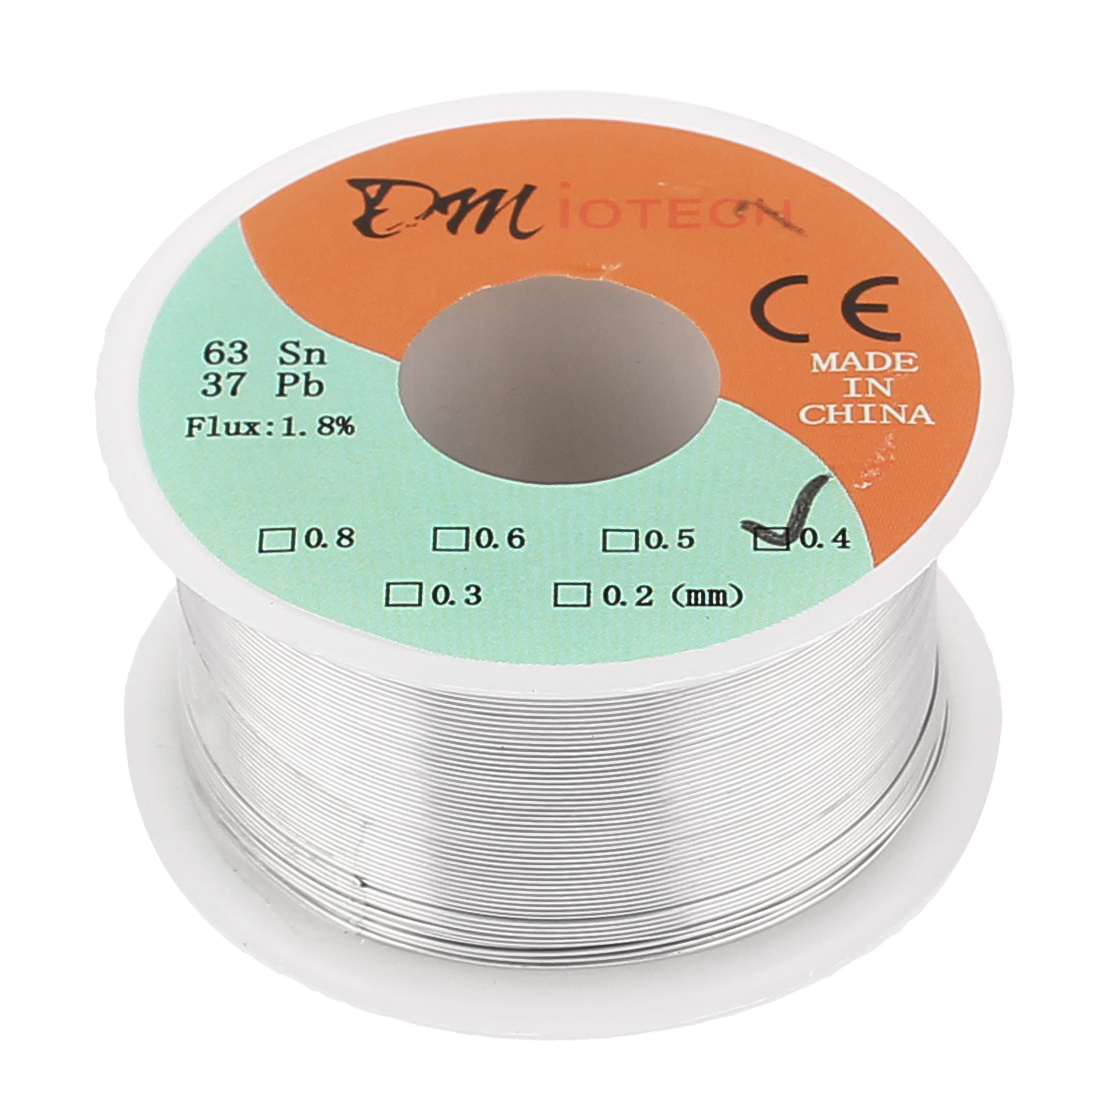 0.4mm Rosin Core Solder Tin Lead Solder Wire 63/37 for Electrical Soldering 100g